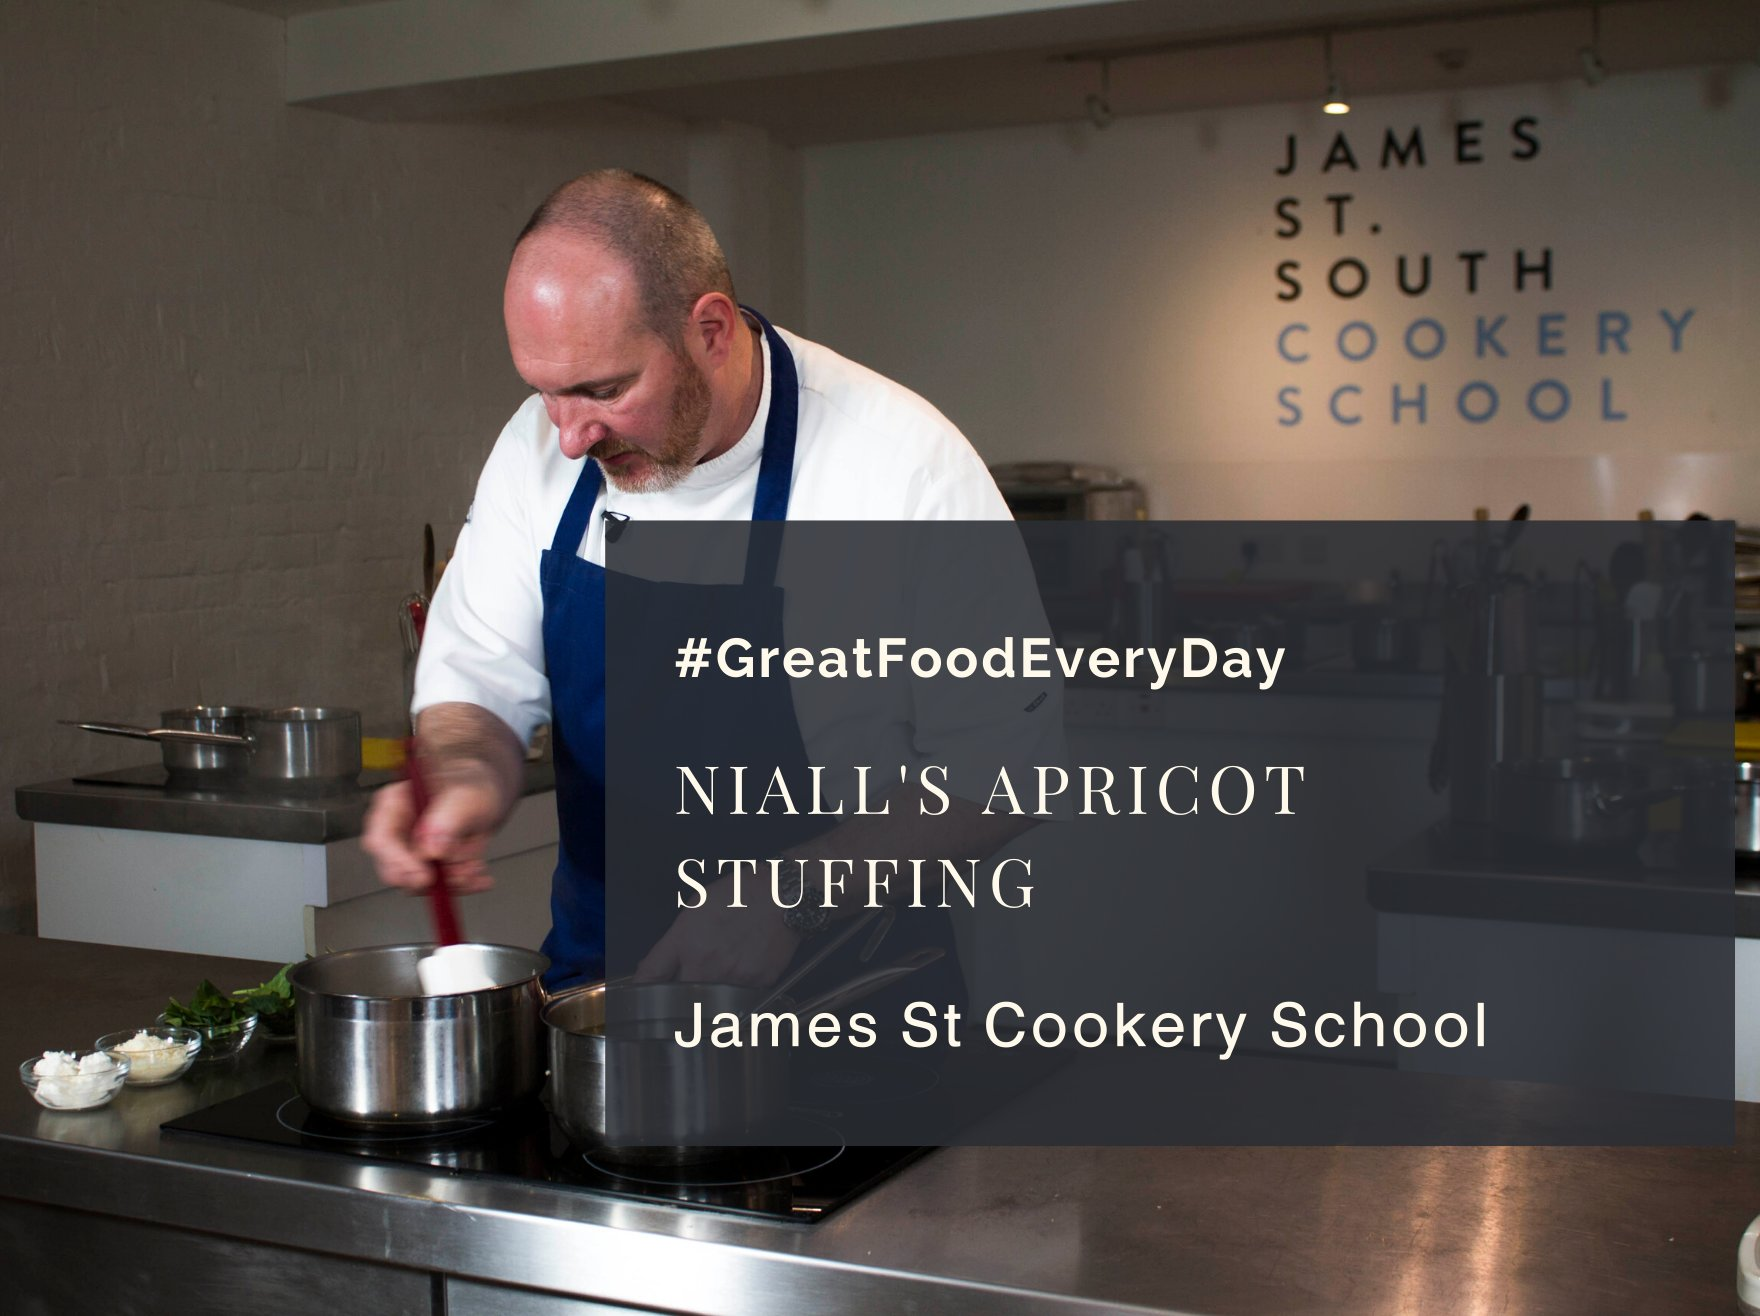 Niall's Apricot Stuffing | James St